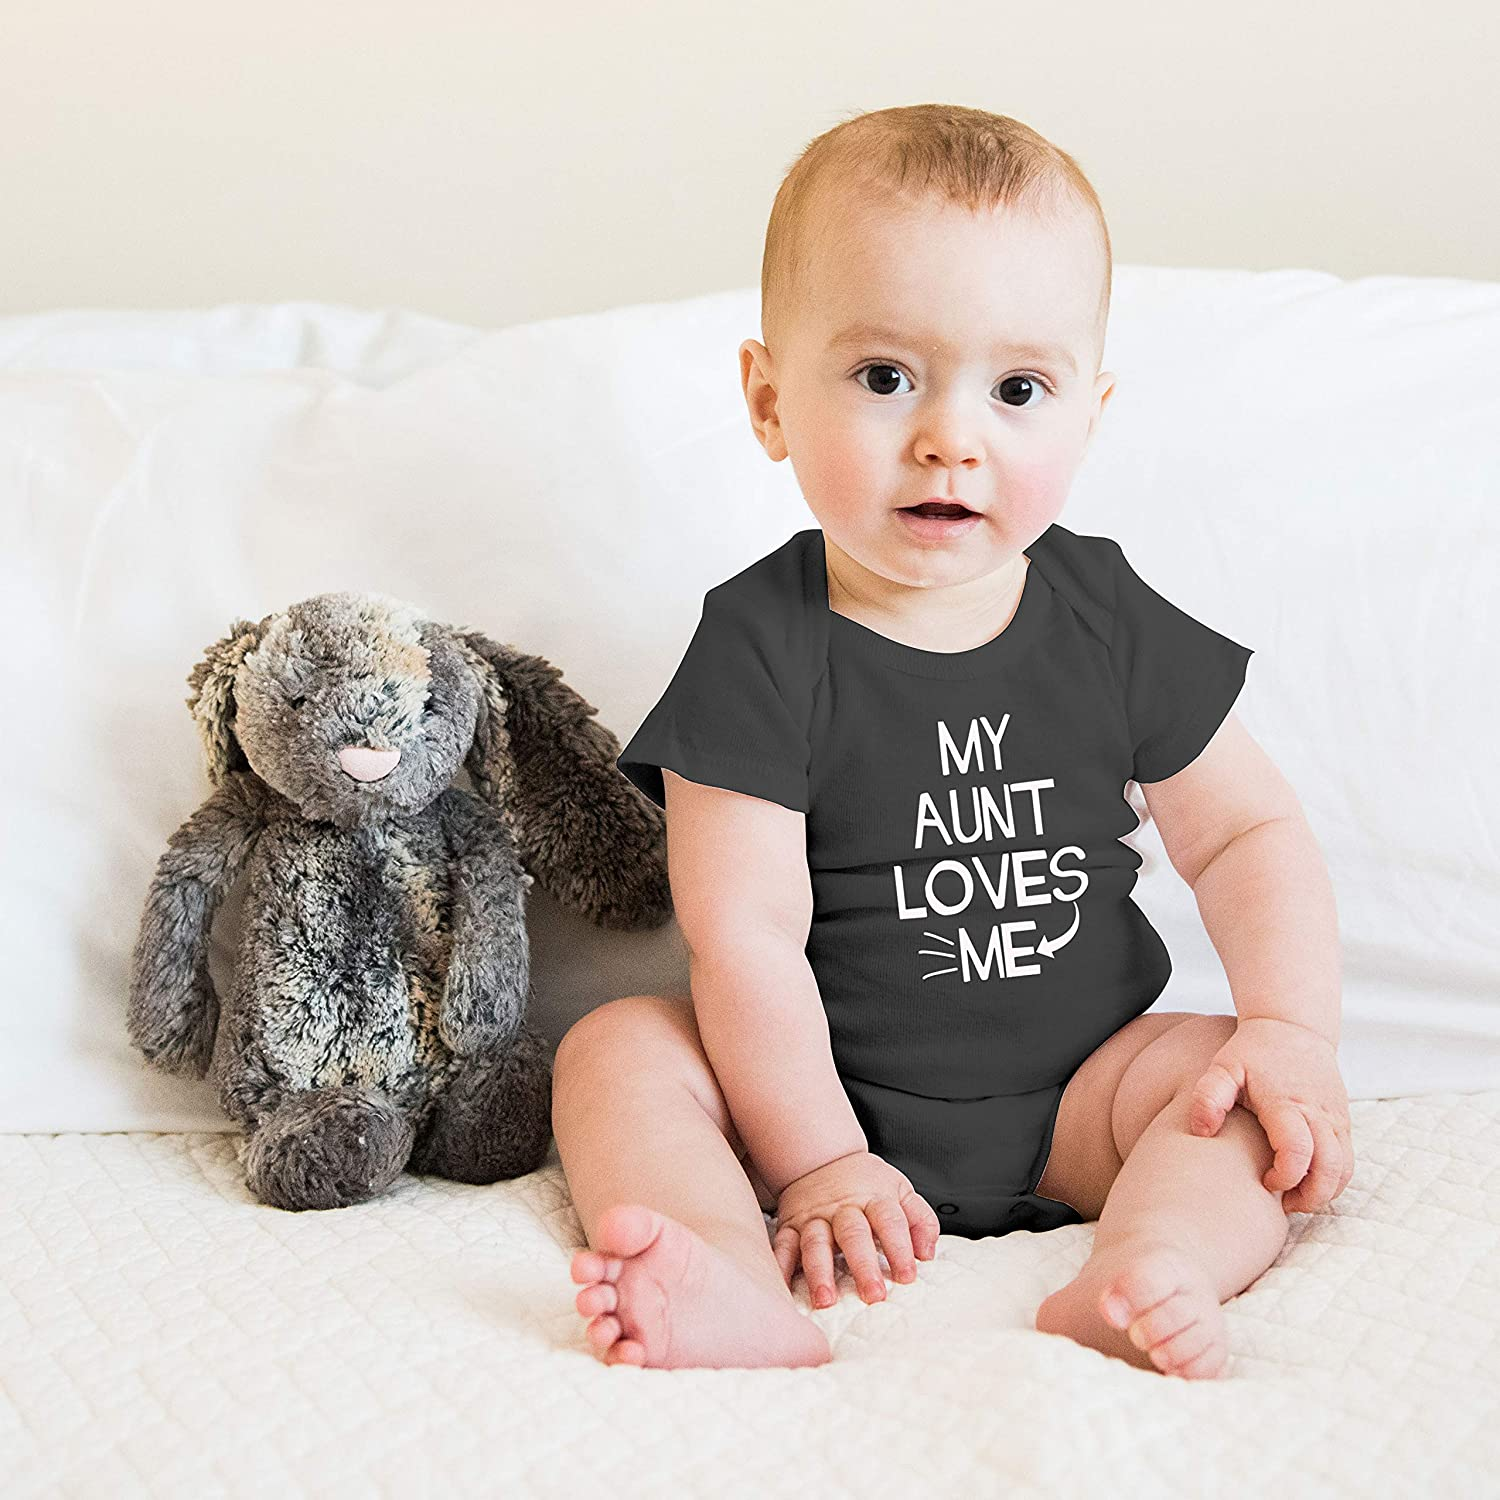 One-Piece Baby Bodysuit Witty Fashions My Aunt Loves Me Funny Cute Novelty Infant Creeper